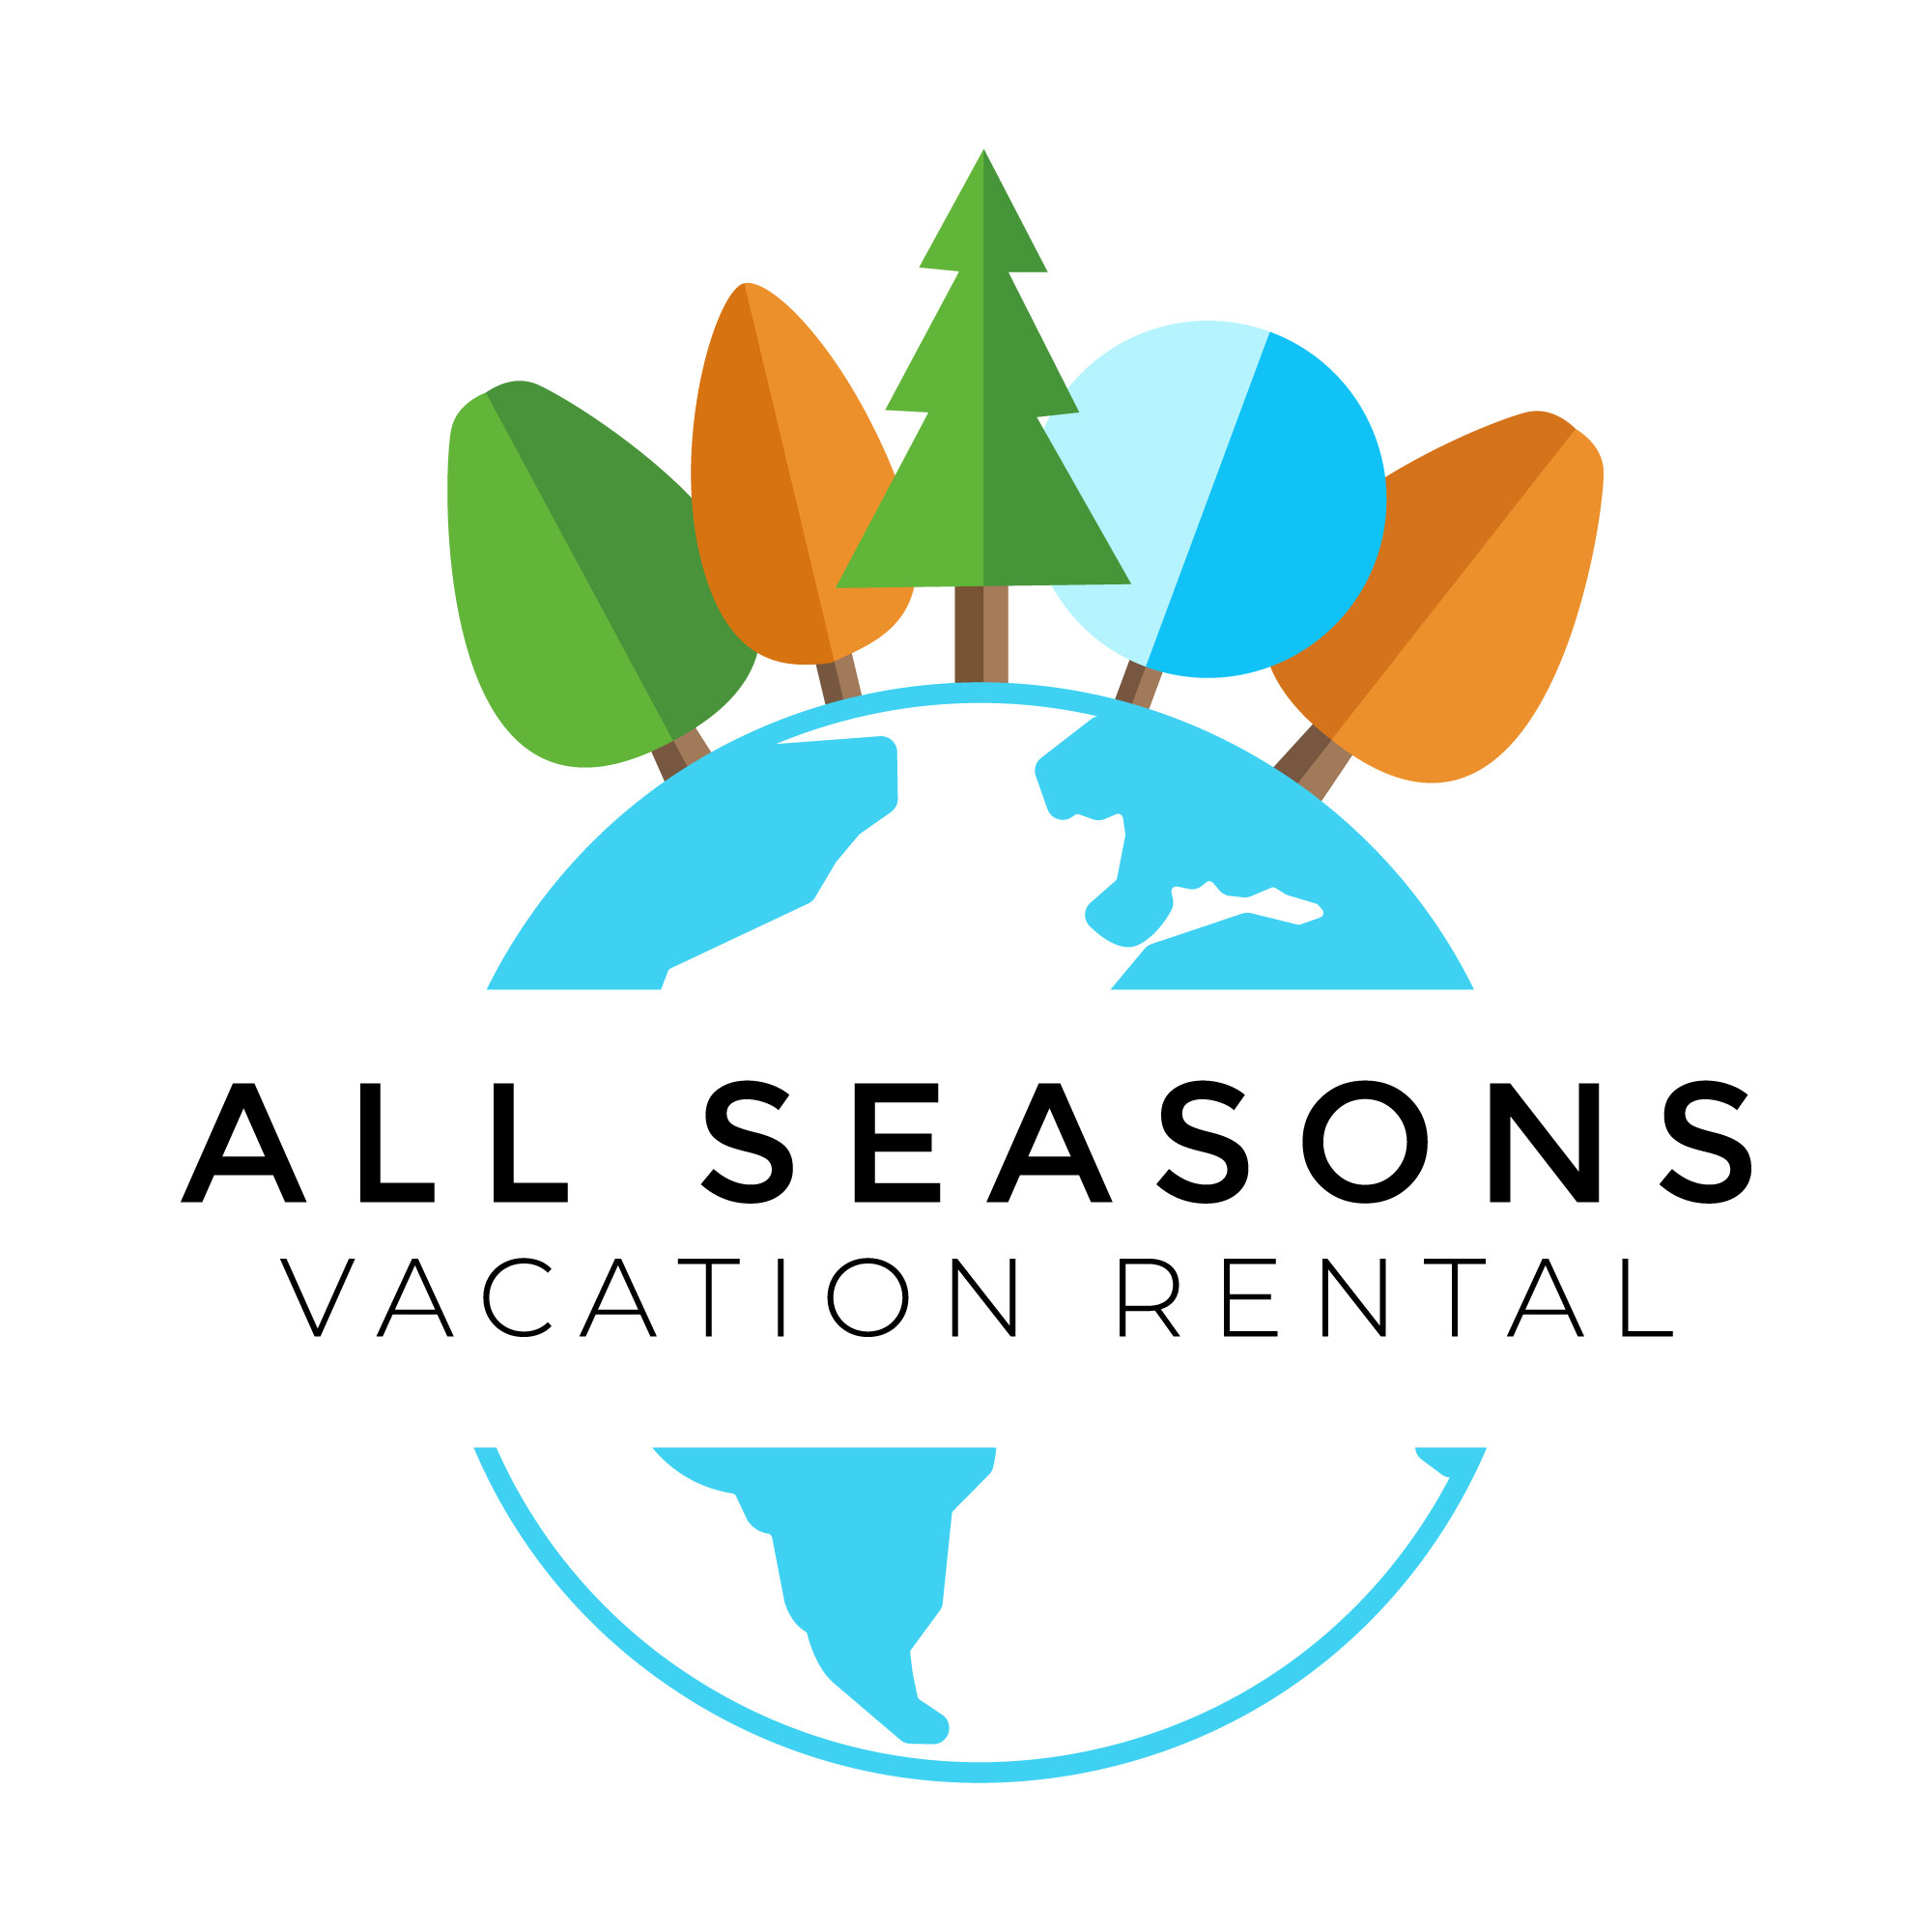 1-on-1 Expert Vacation Home Consultation